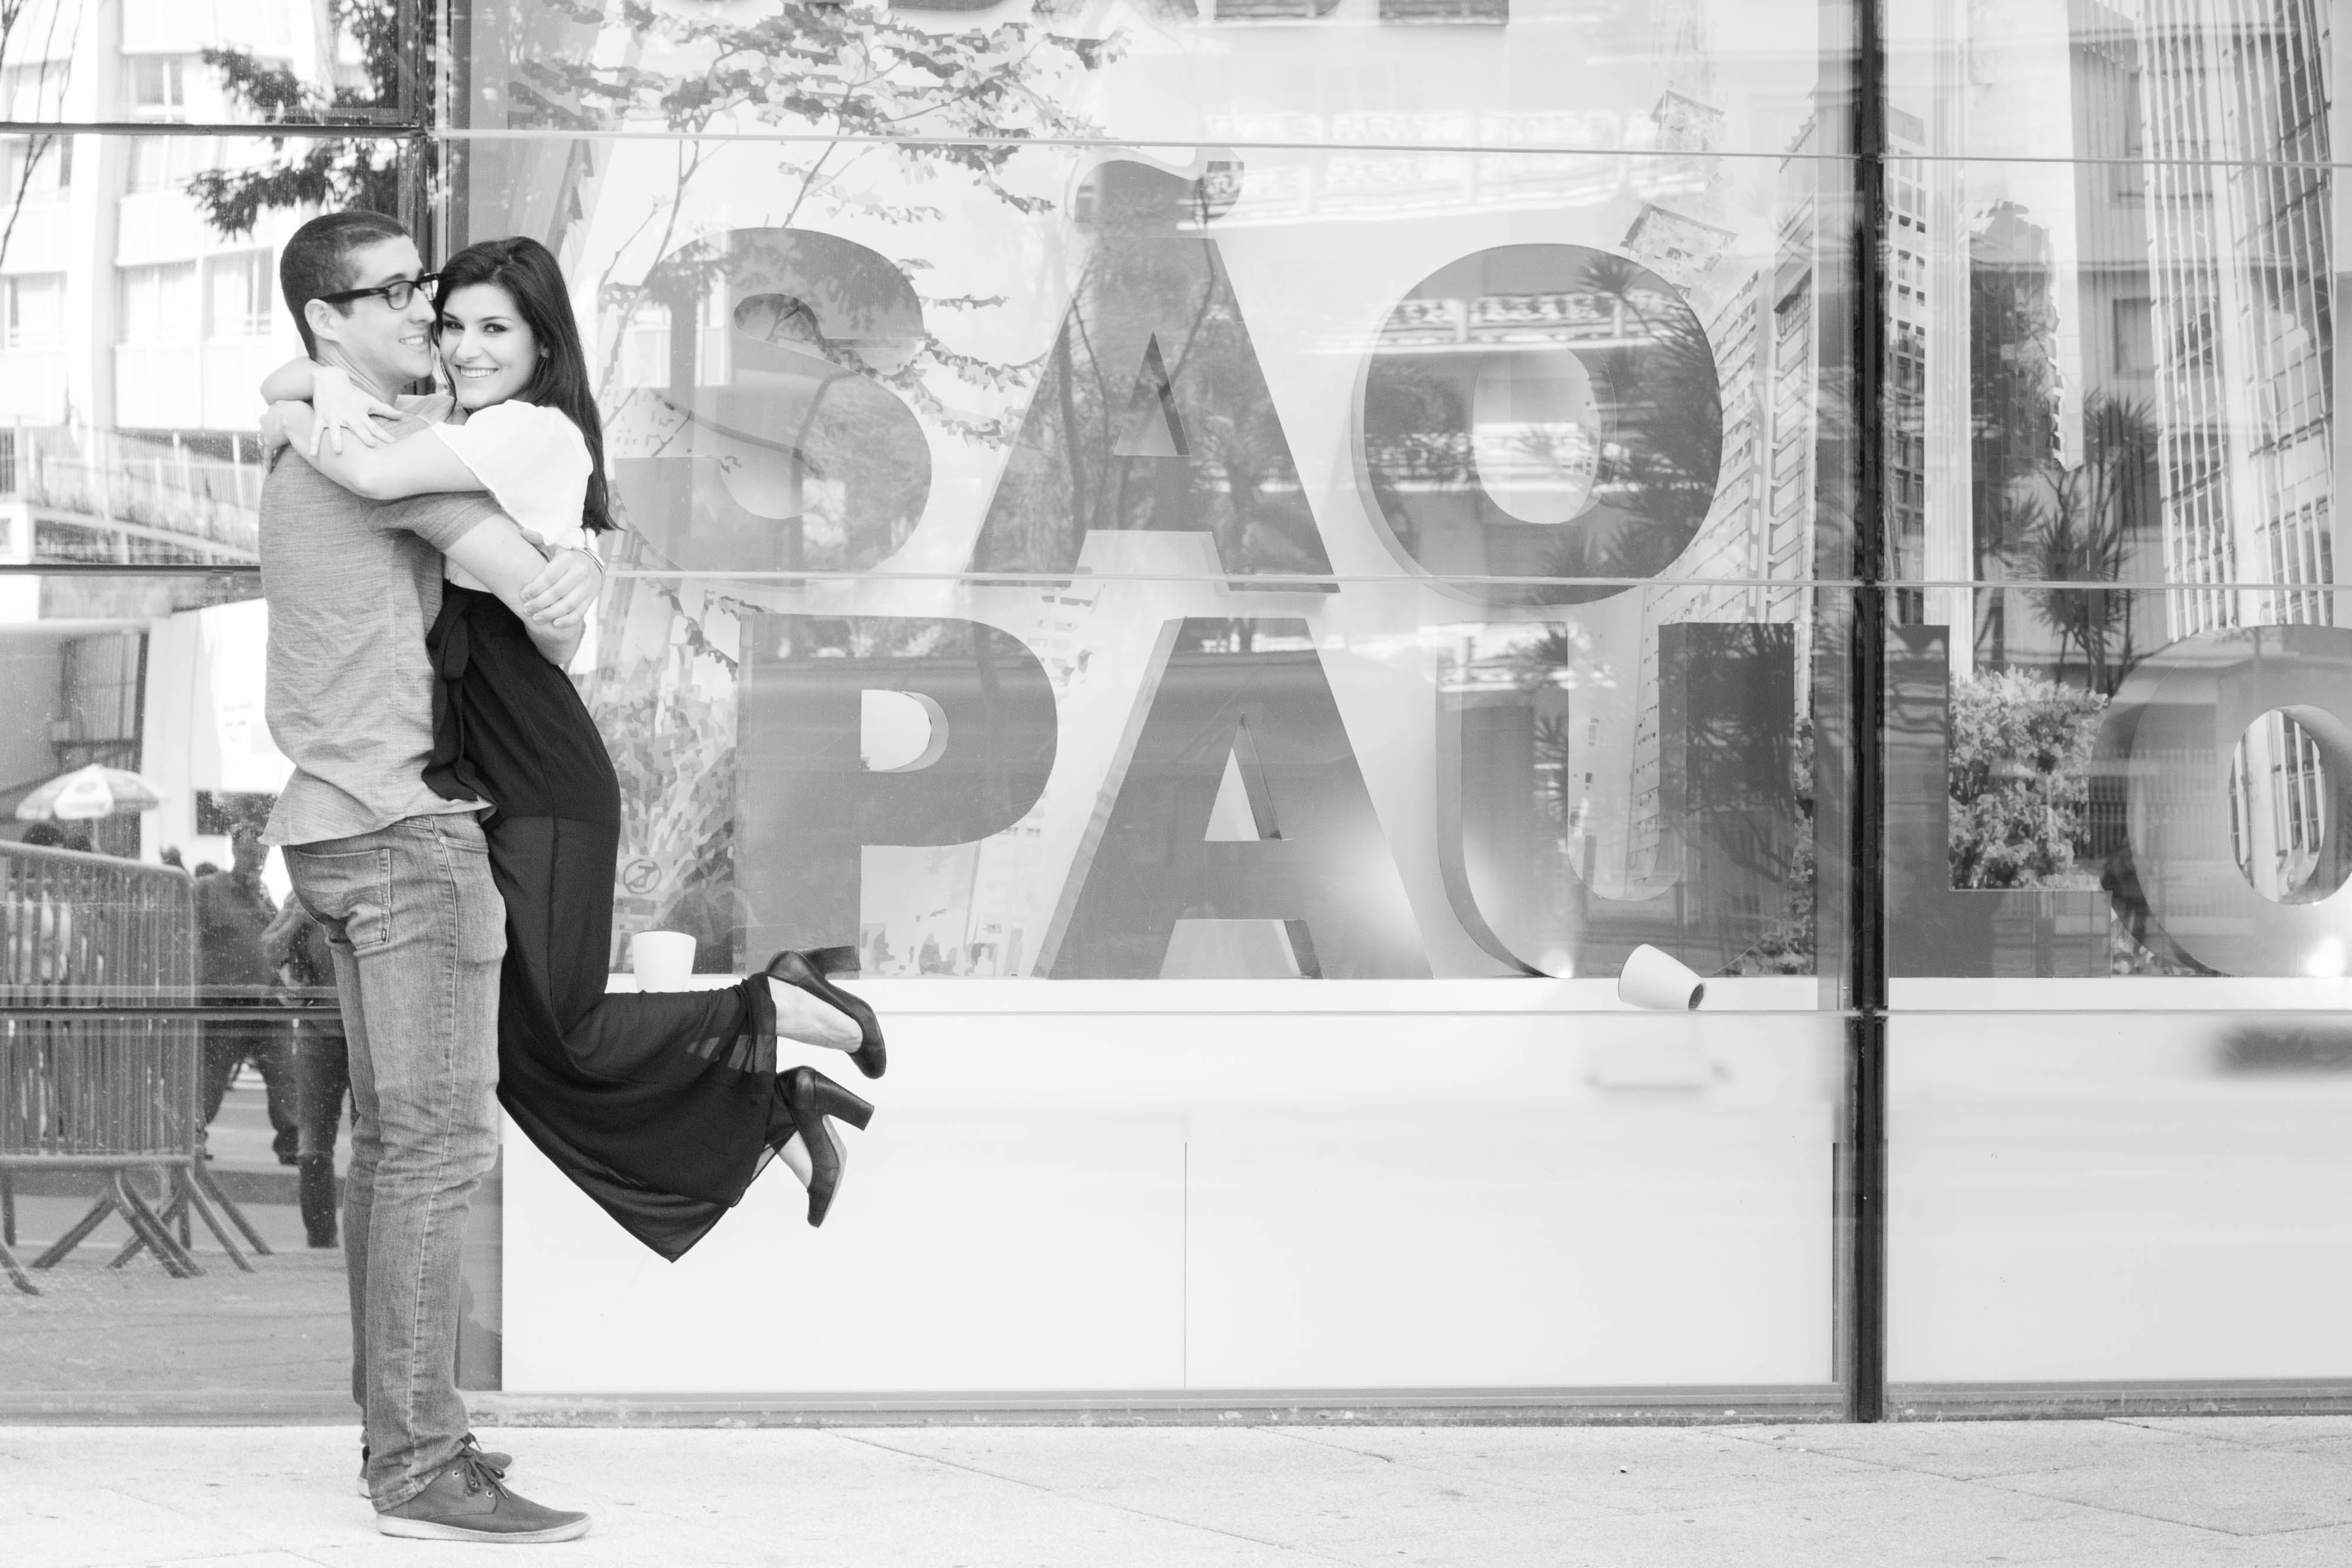 Grayscale Photo of Man and Woman Embracing Each Other